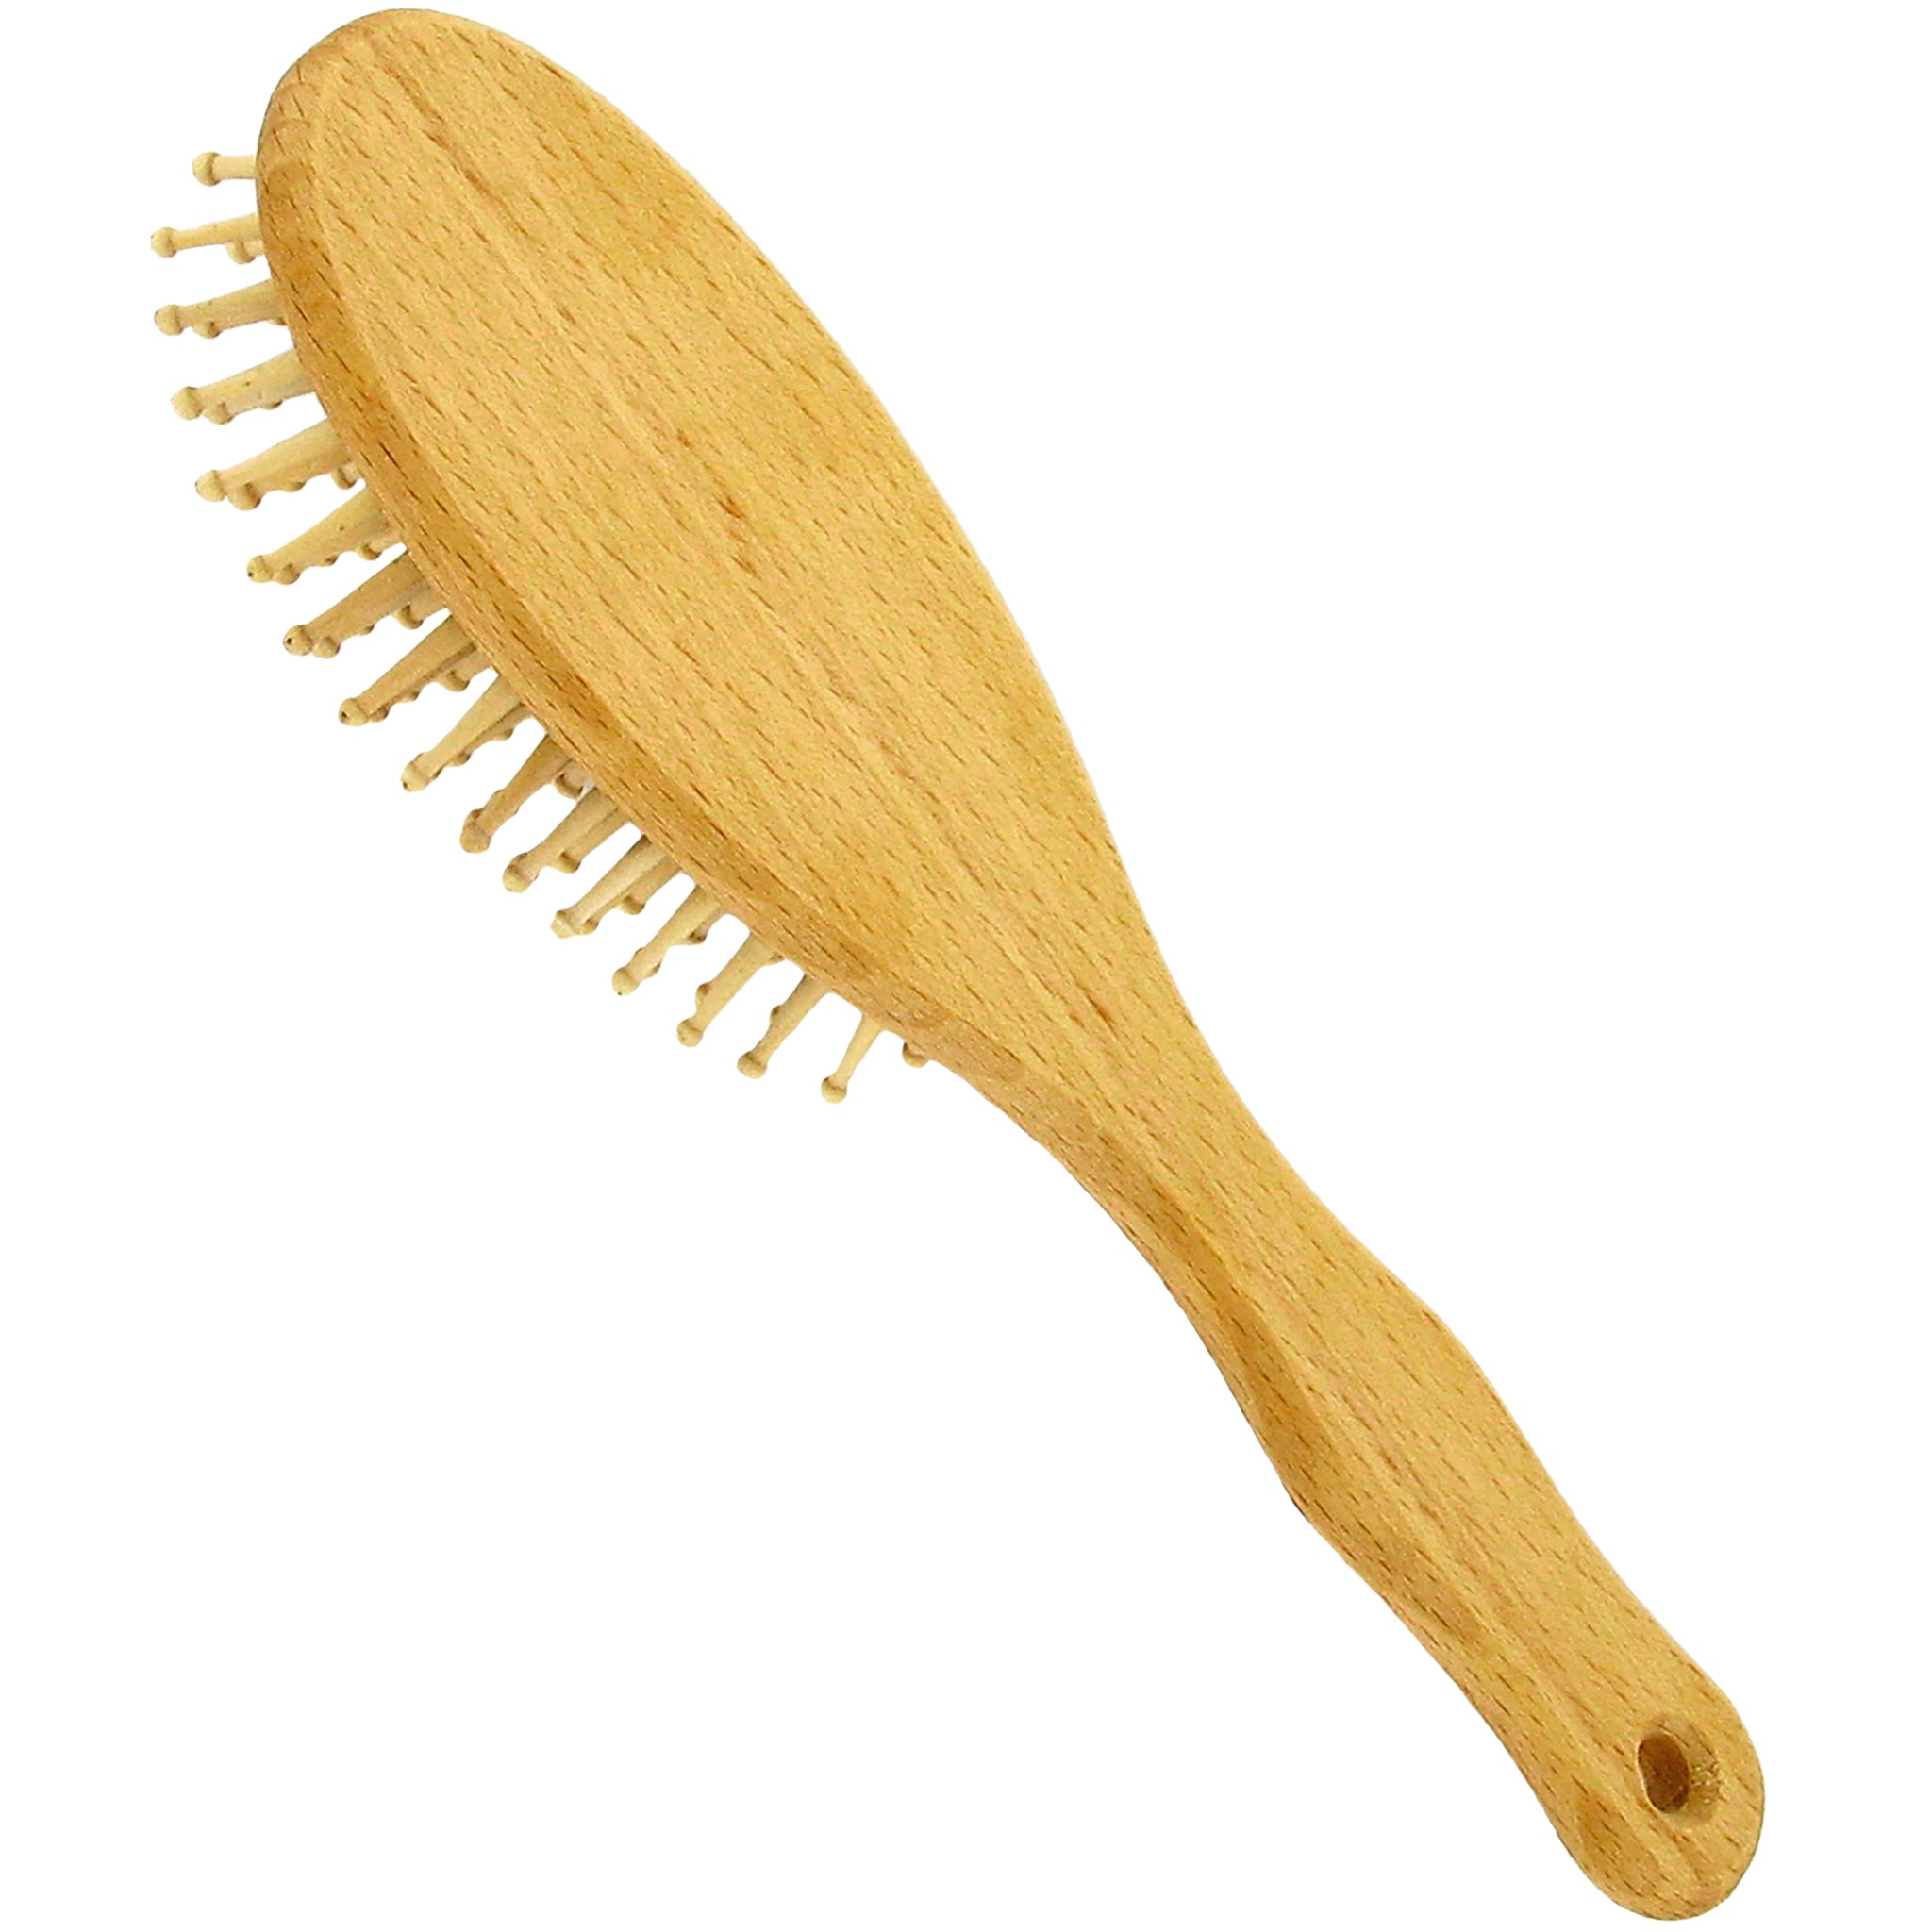 Vegan Beech Wood Large Hair Brush with Round Wooden Pins